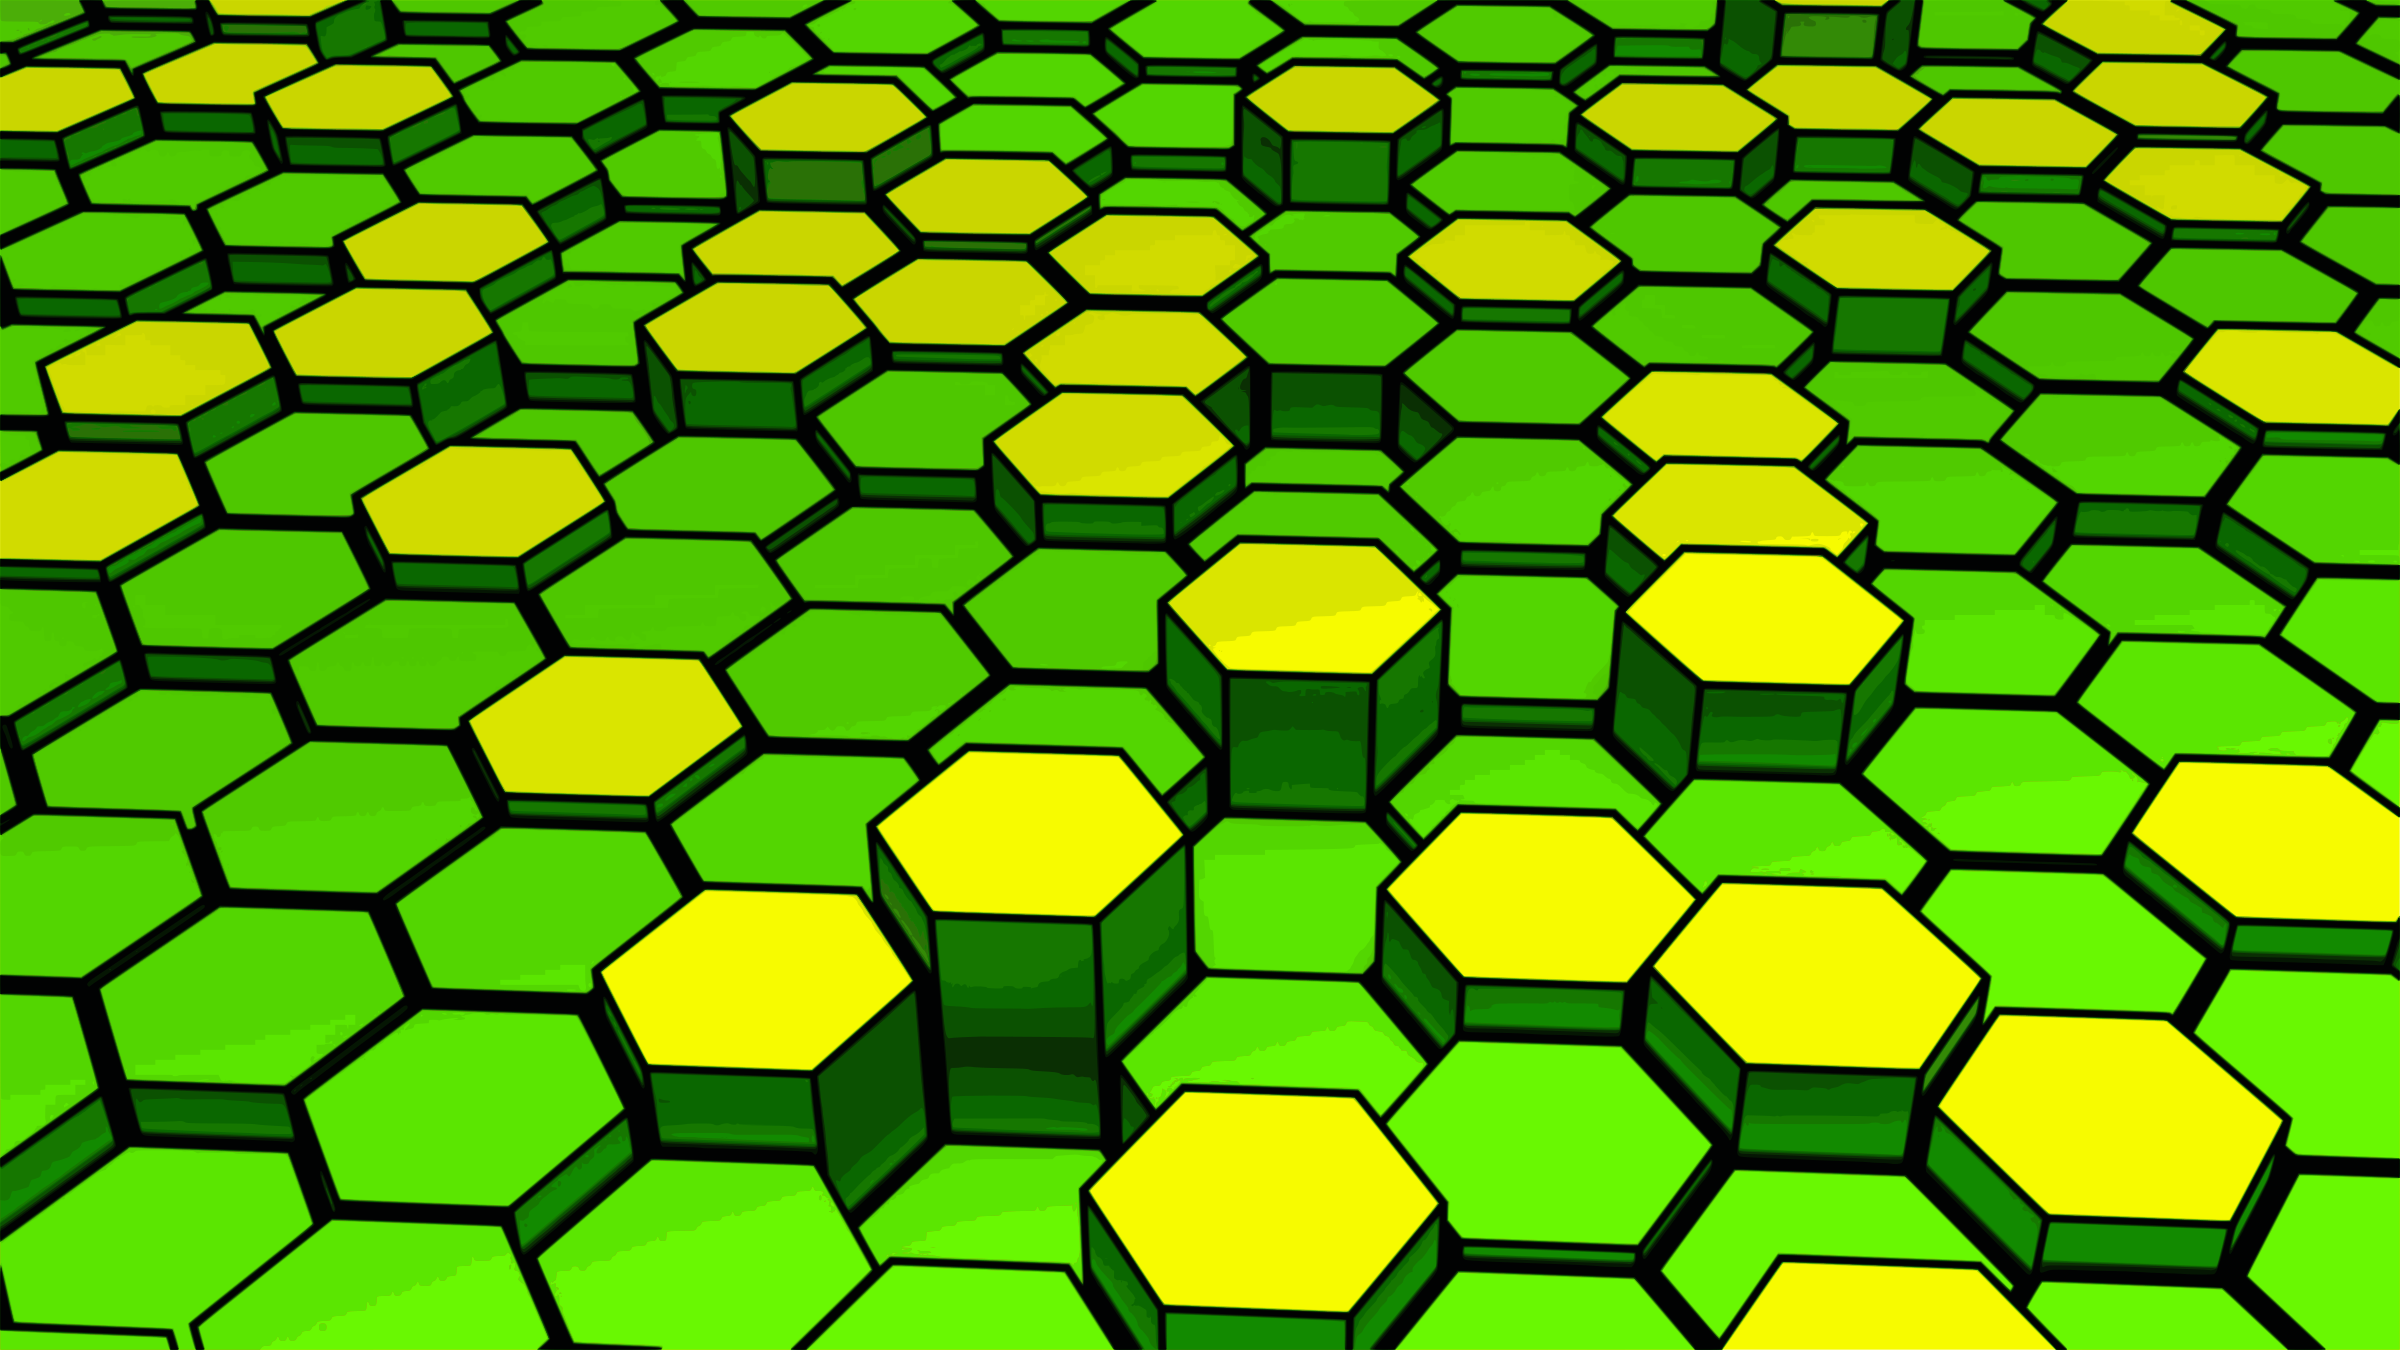 Colored Hexagons by photofree.ga